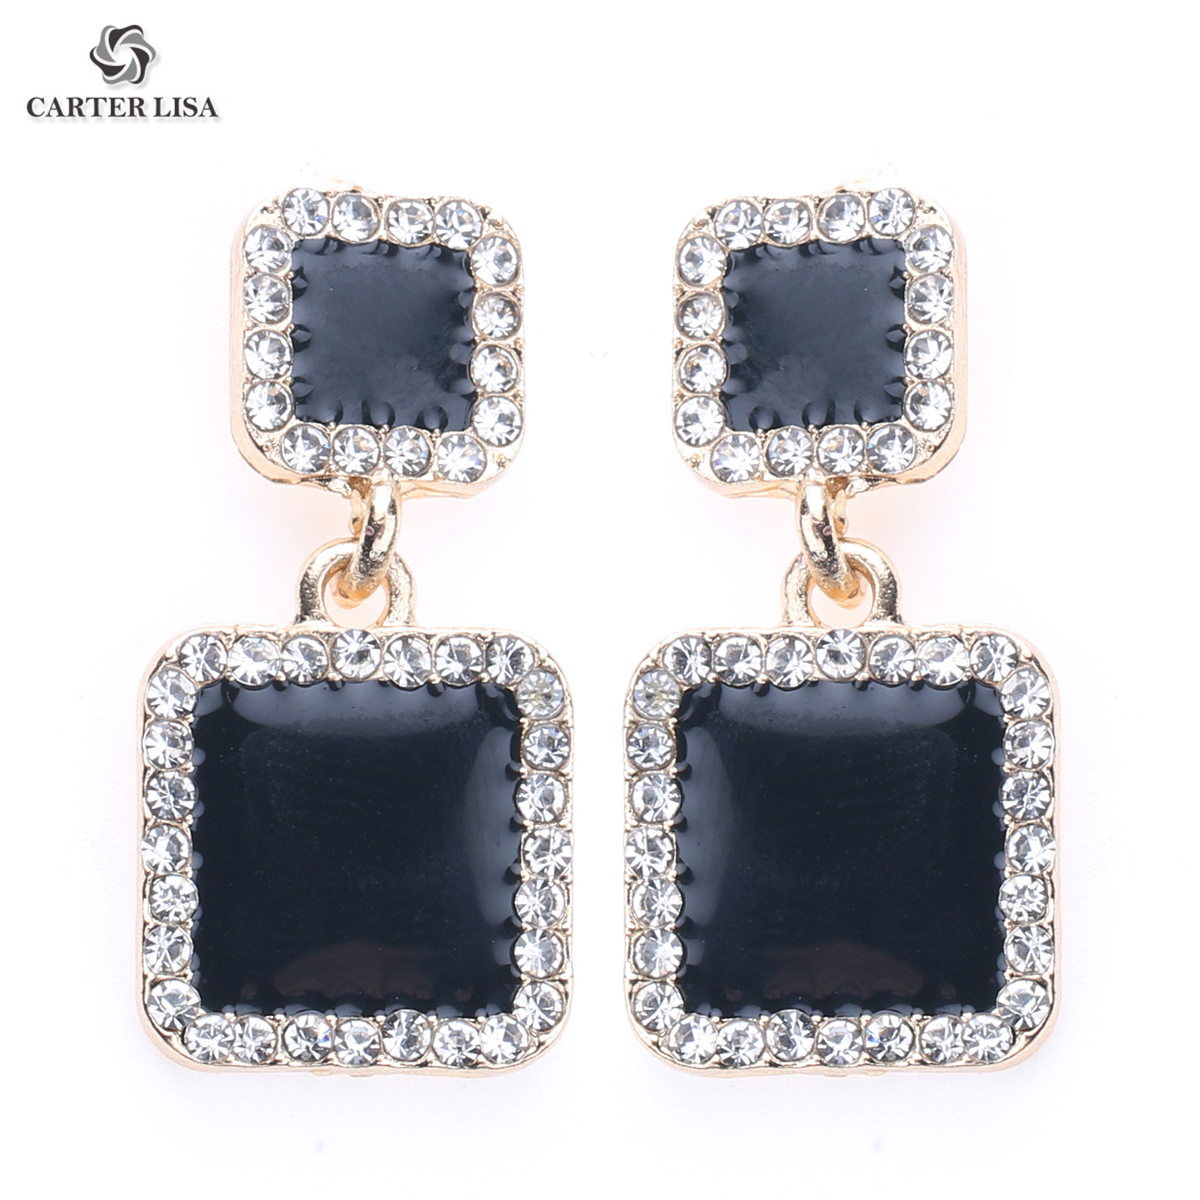 CARTER LISA 2019 New Statement Earrings Black Square Geometric Earrings For Women Crystal Luxury  Rhinestone Earring HDEA-097